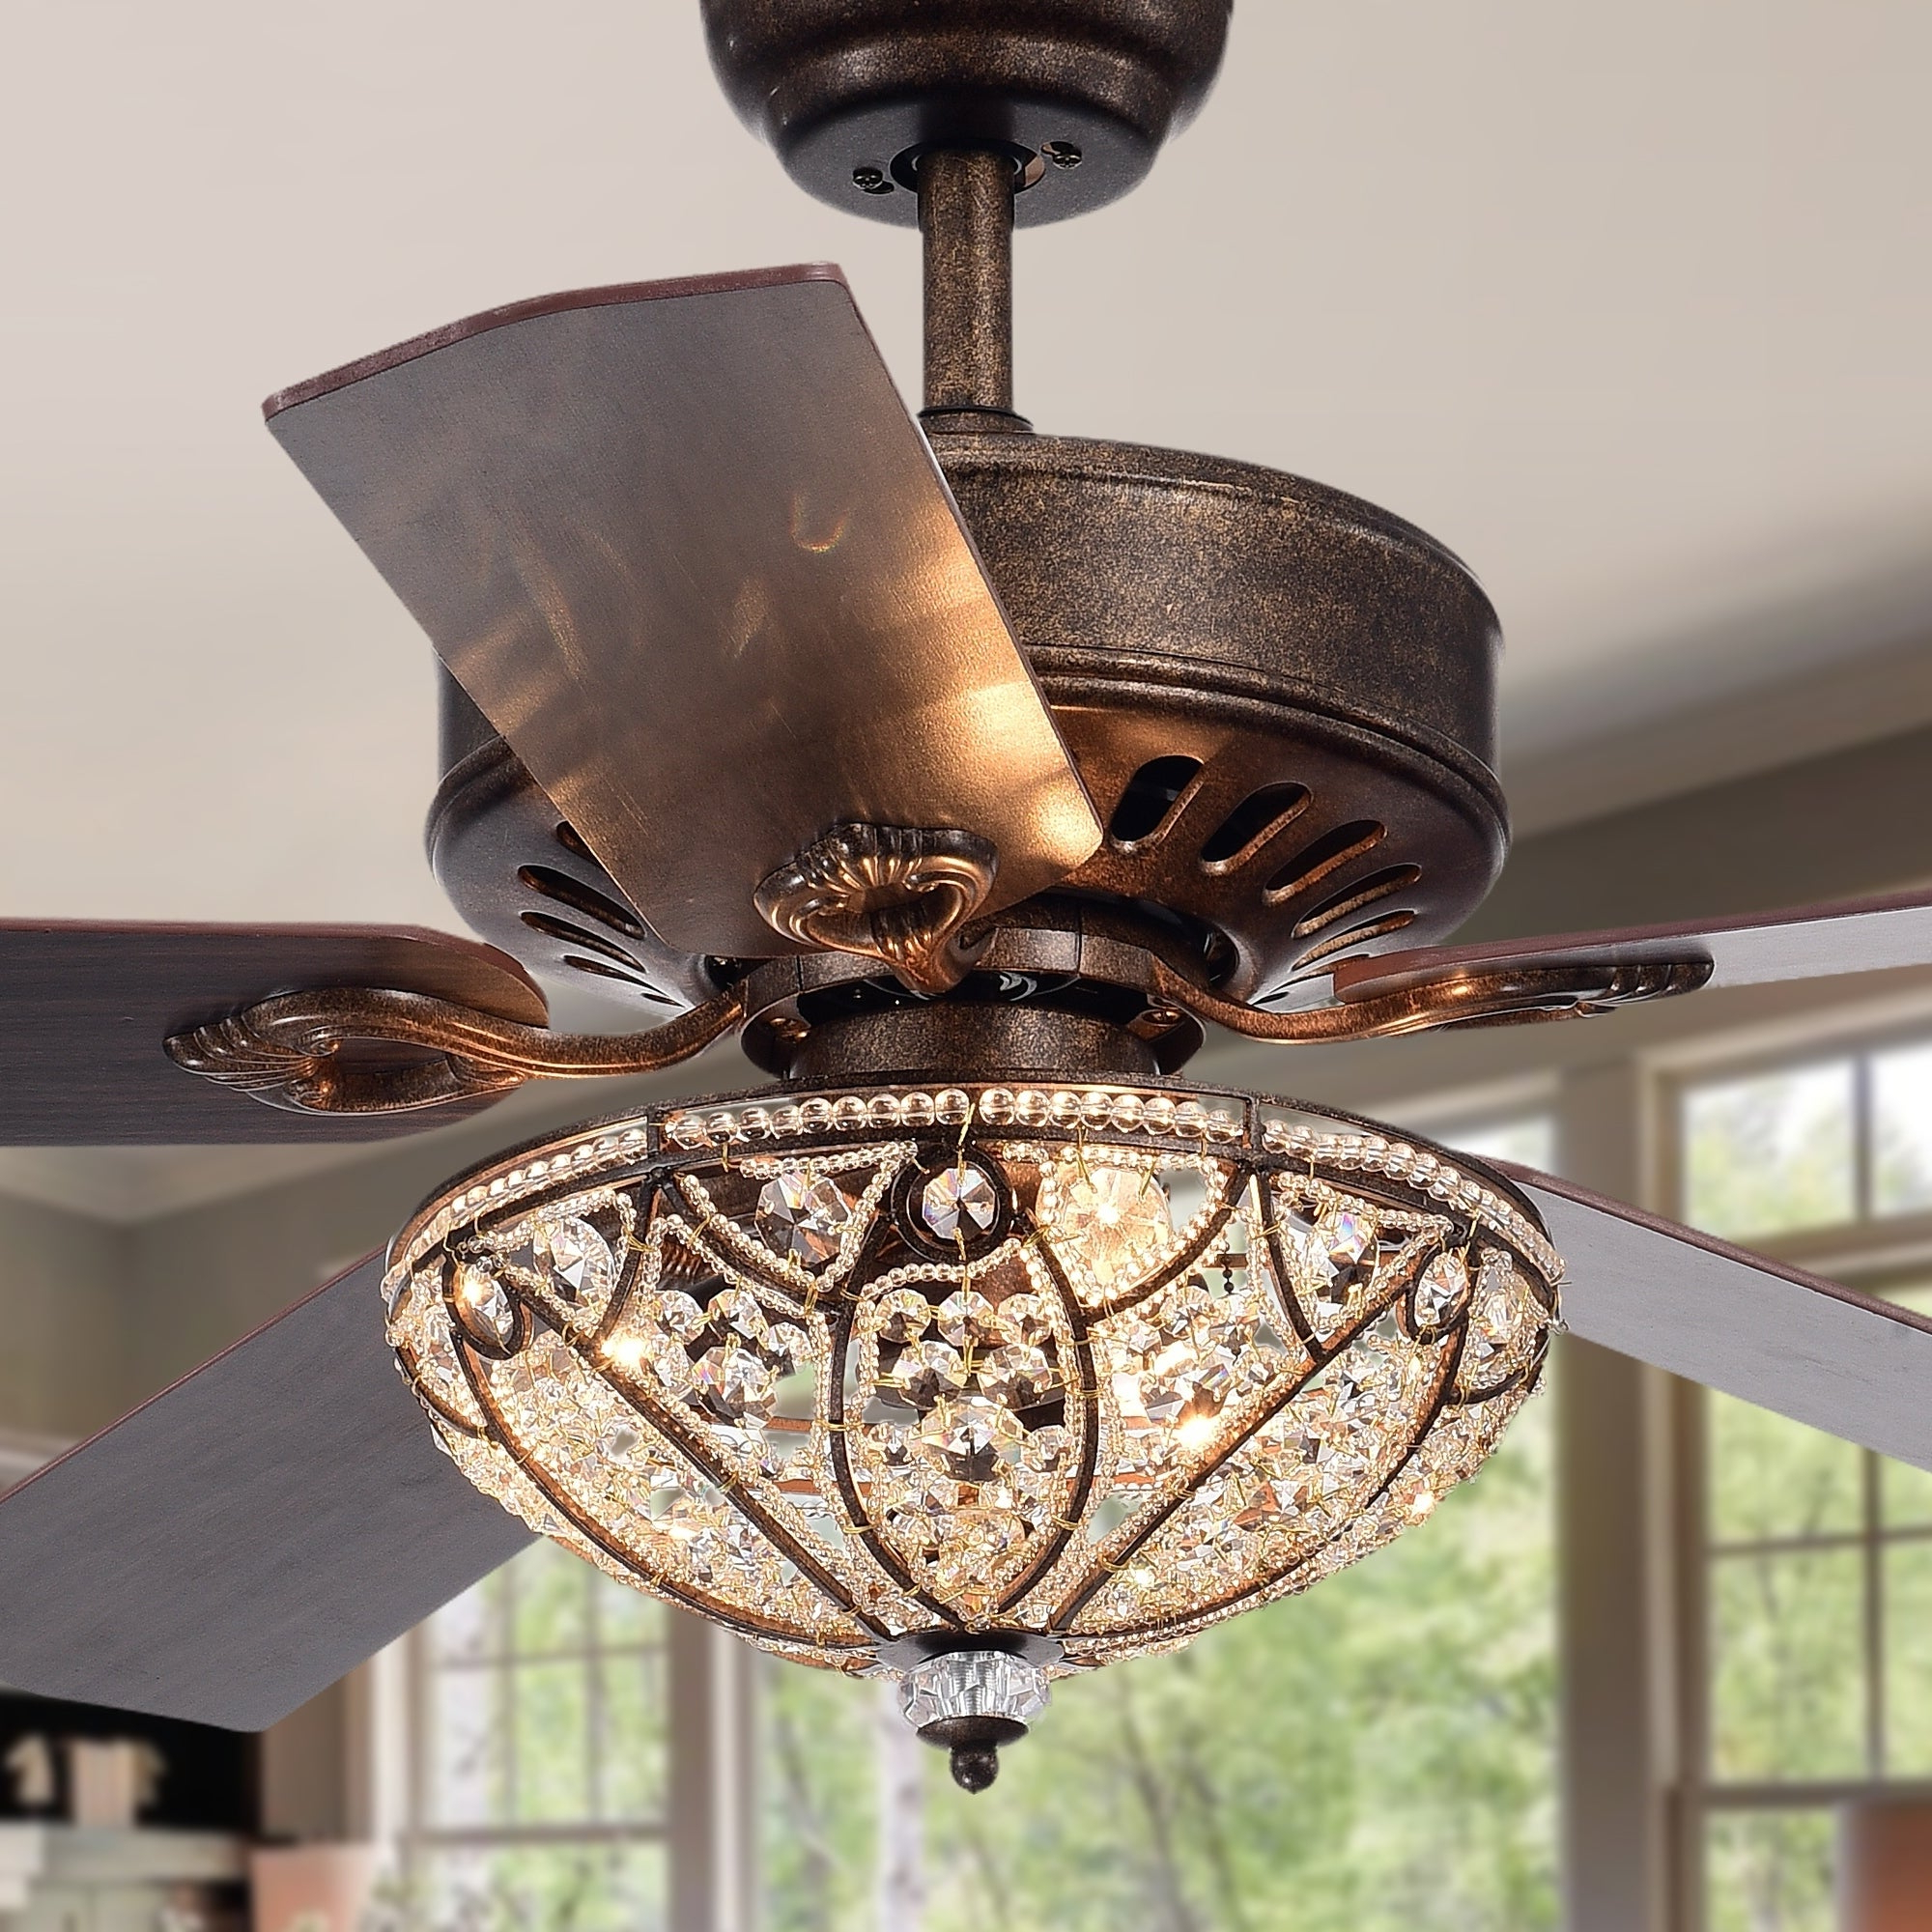 Caged Crystal 5 Blade Ceiling Fans With Regard To Fashionable Gliska 52 Inch 5 Blade Rustic Bronze Lighted Ceiling Fans W Crystal Shade  Optional Remote Control (Incl 2 Color Option Blades) (View 9 of 20)